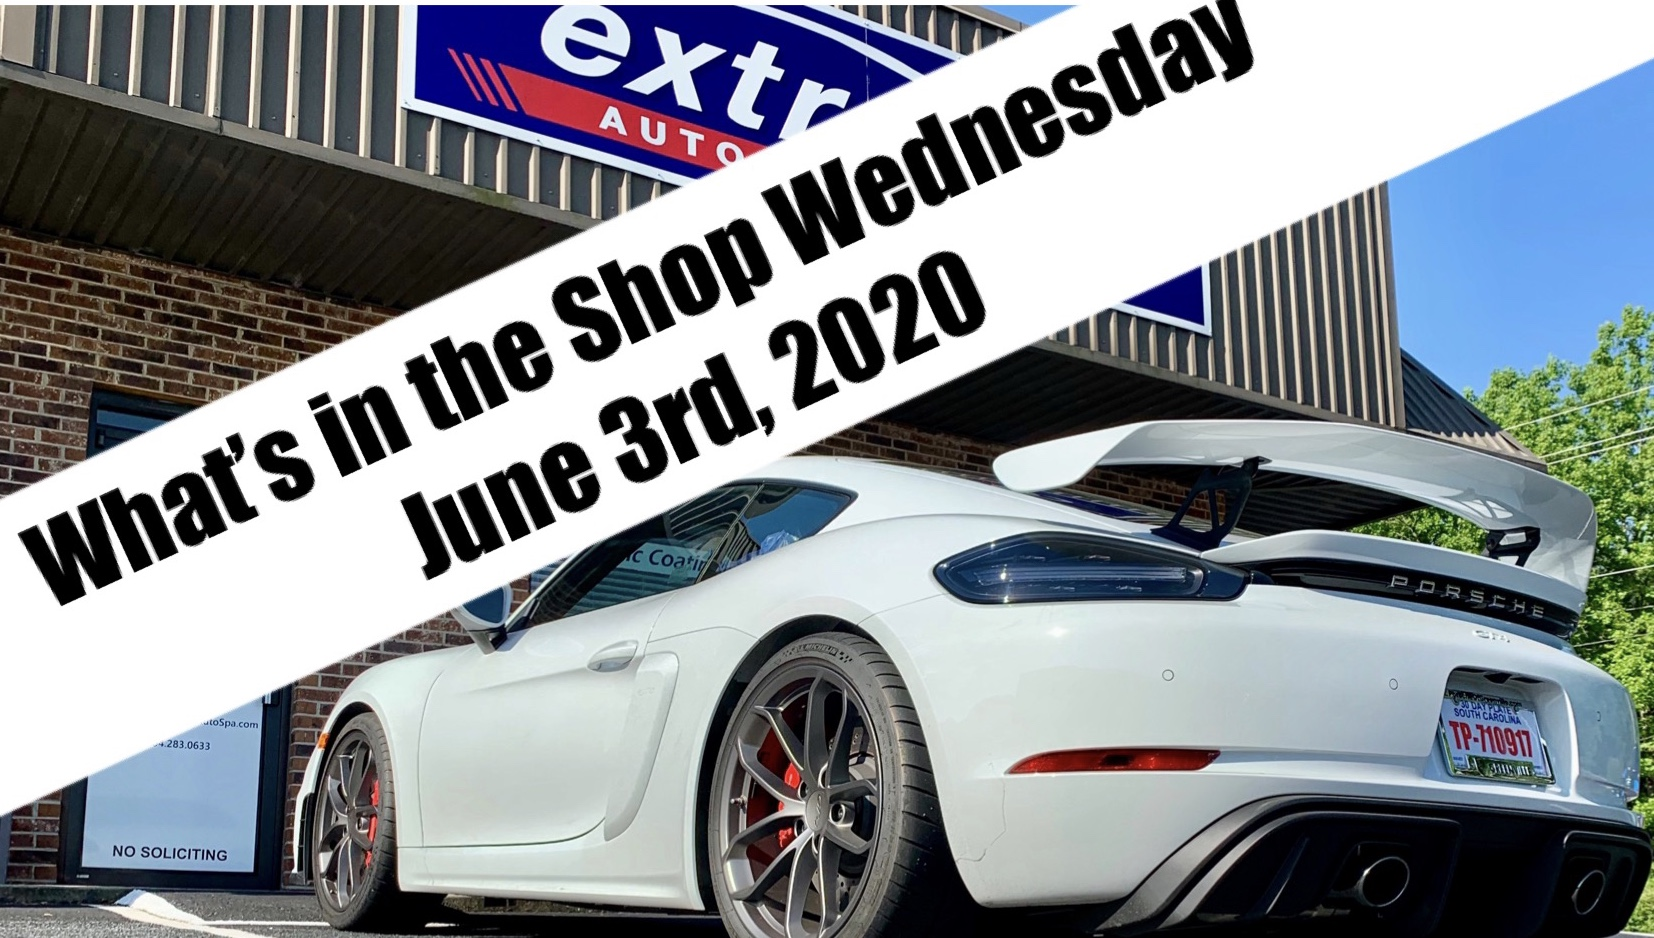 What's in the shop Wednesday June 3rd, 2020